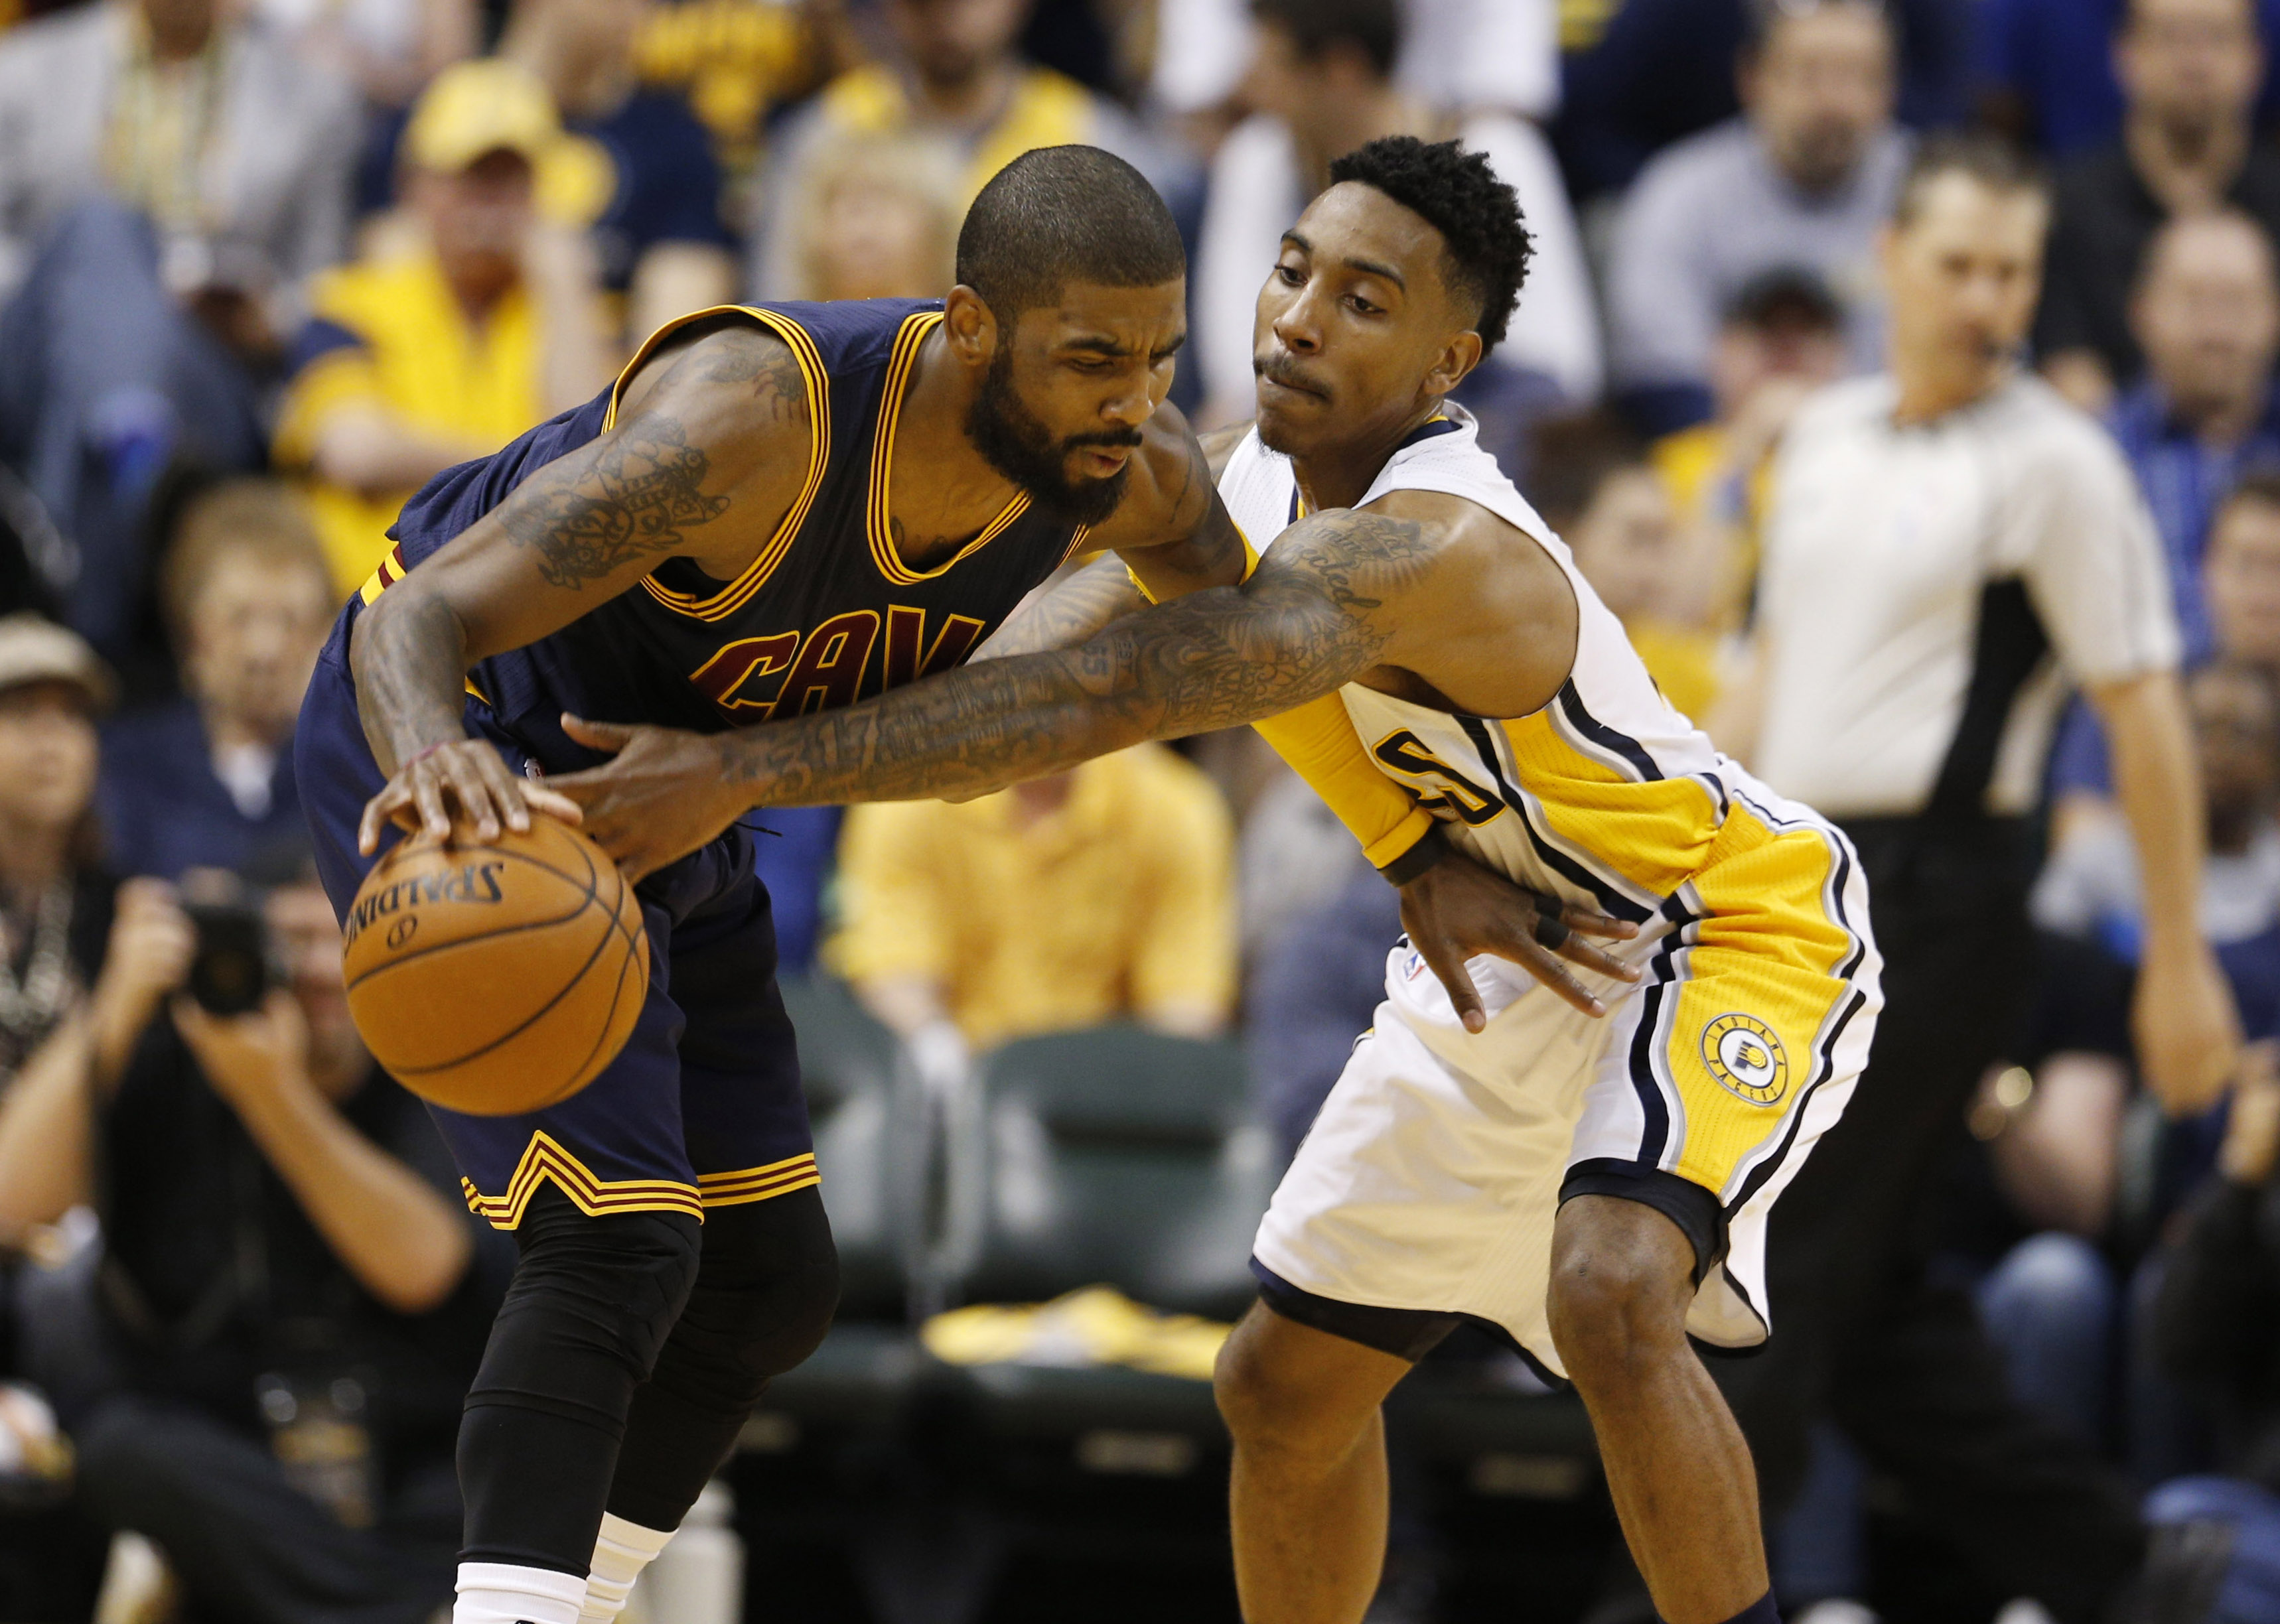 pacers vs cavaliers - photo #46